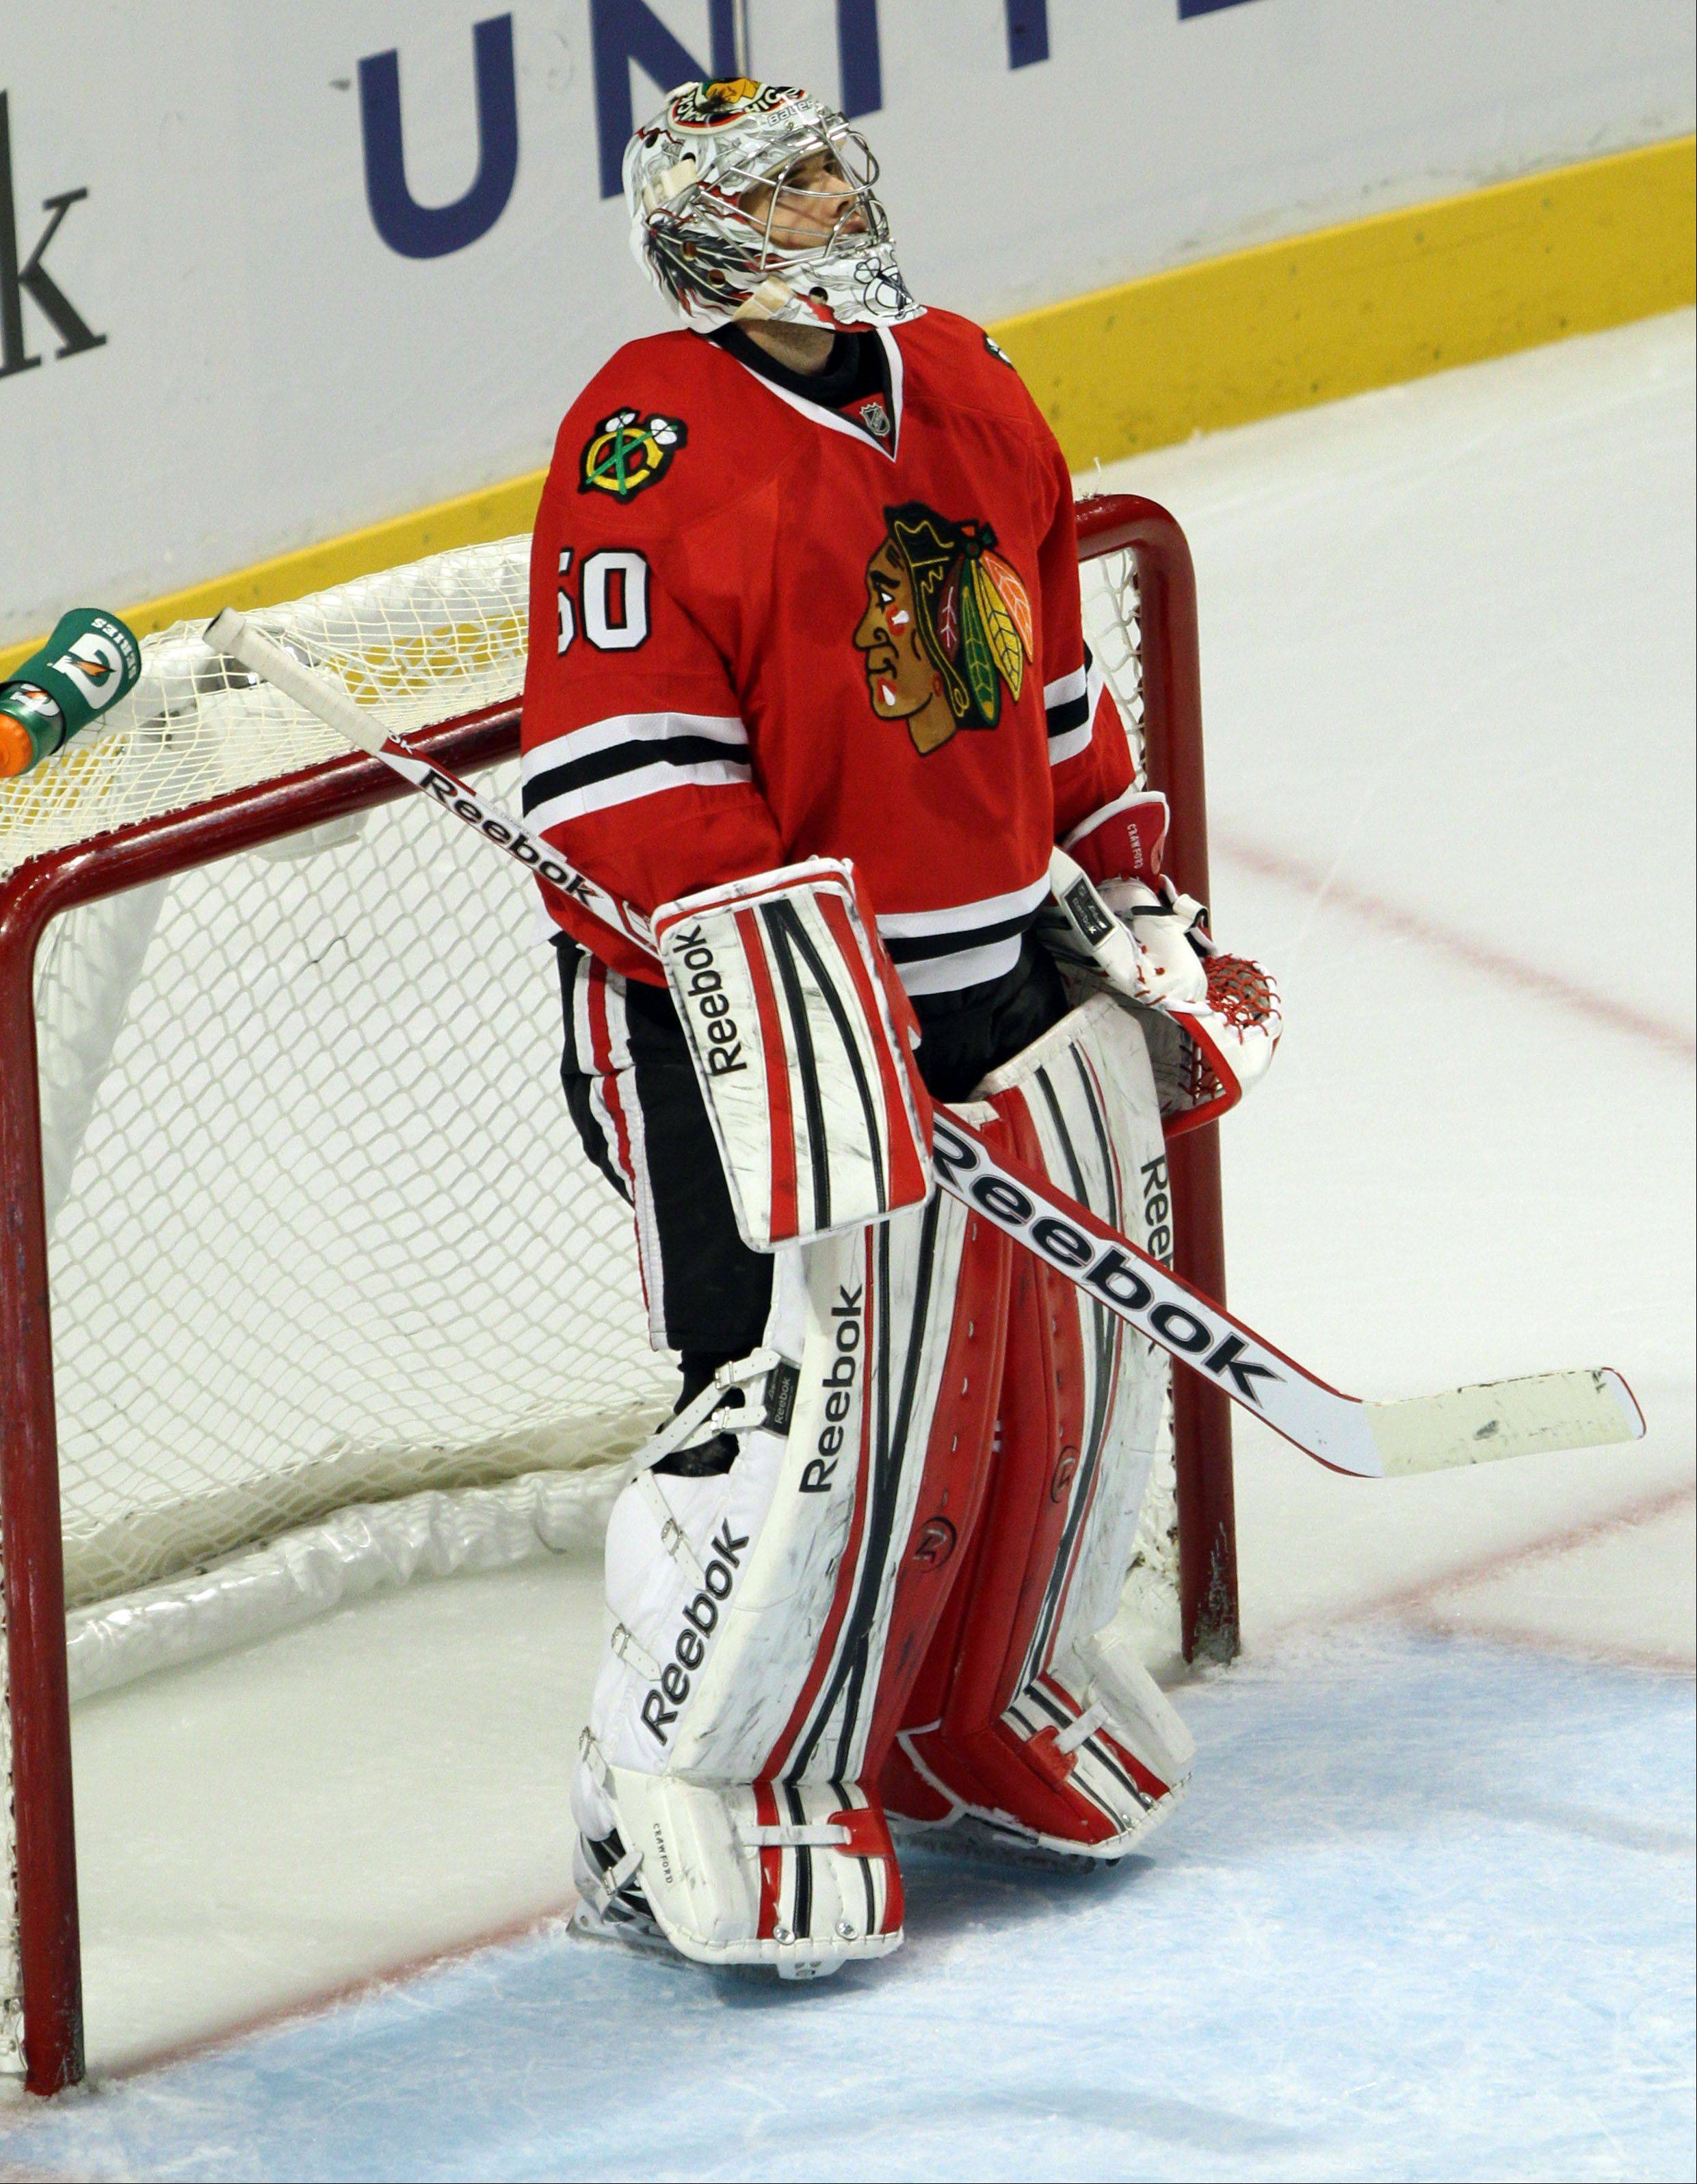 Great expectations: Crawford, Hawks ready for playoffs